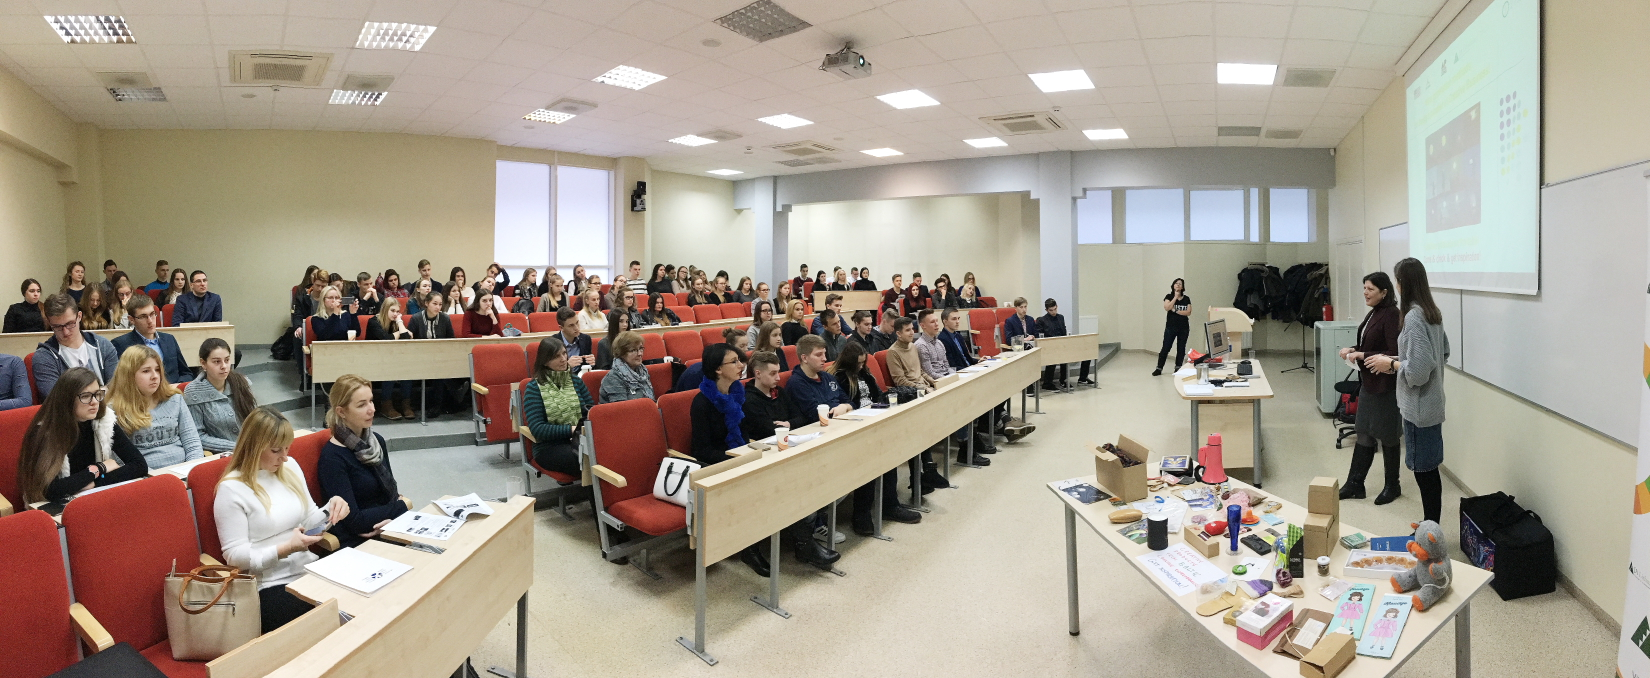 Entrepreneurship seminar at the University Vilnius (Lithuania)